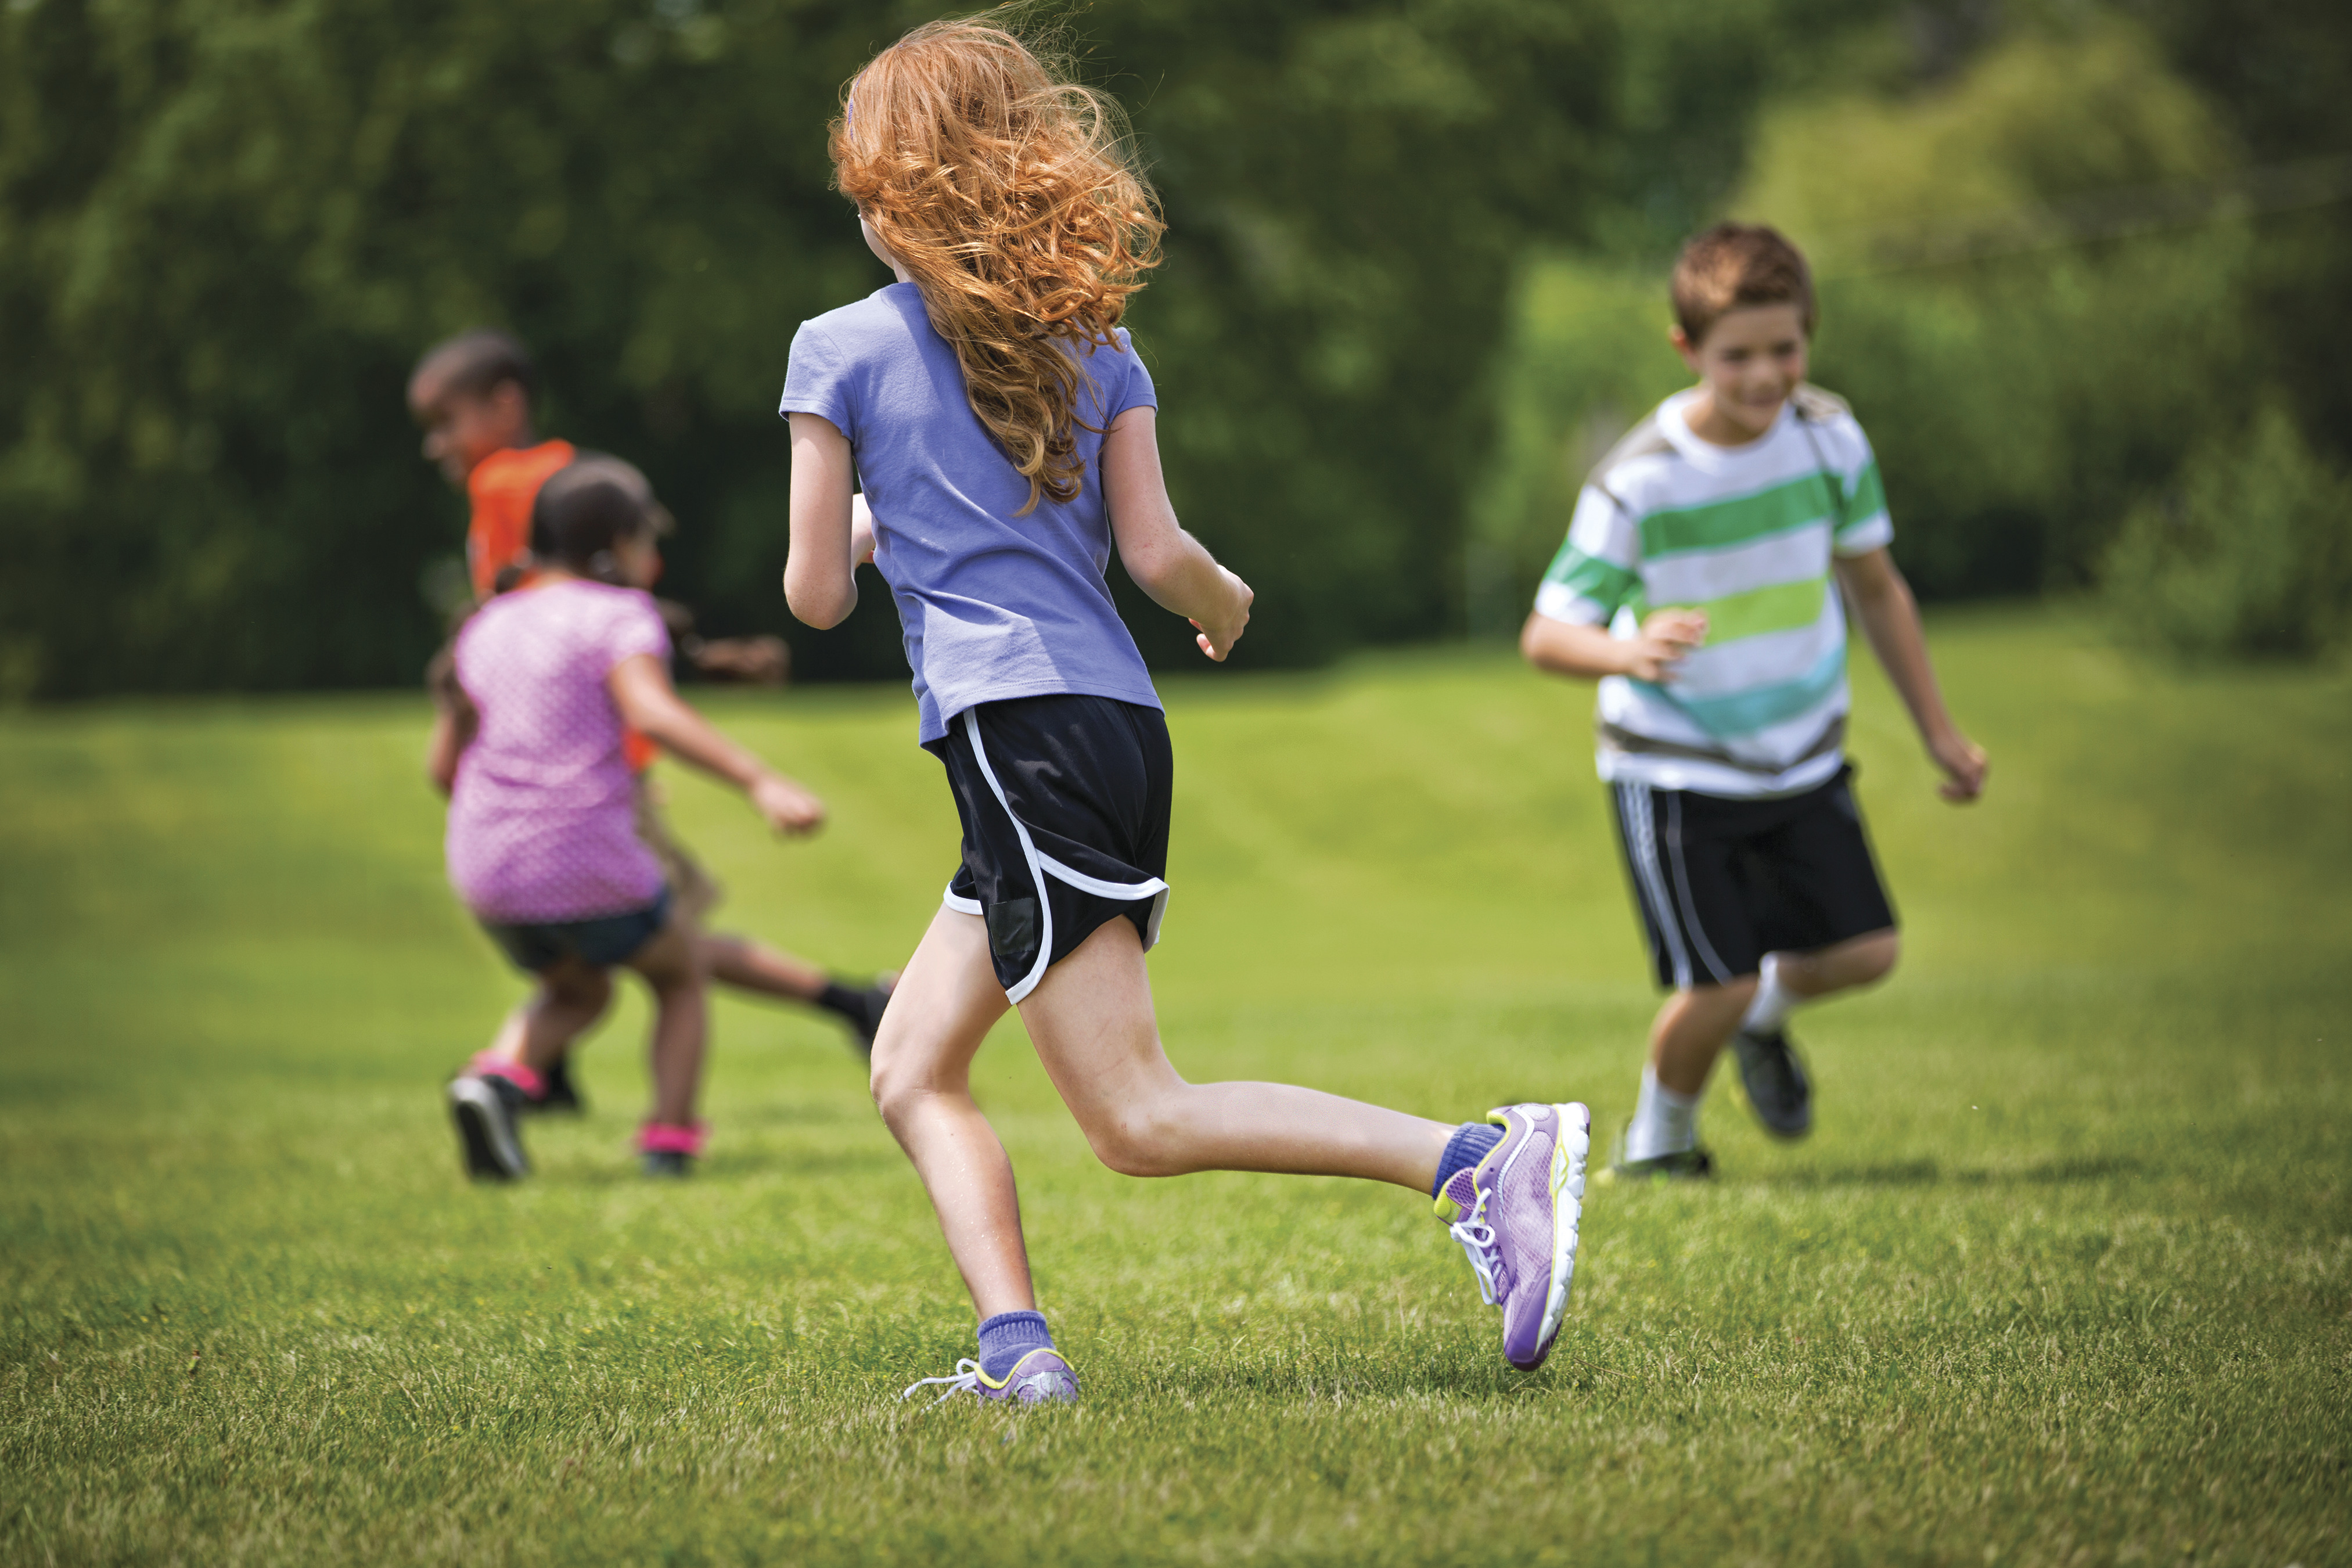 Kids running and playing in an open grassy field